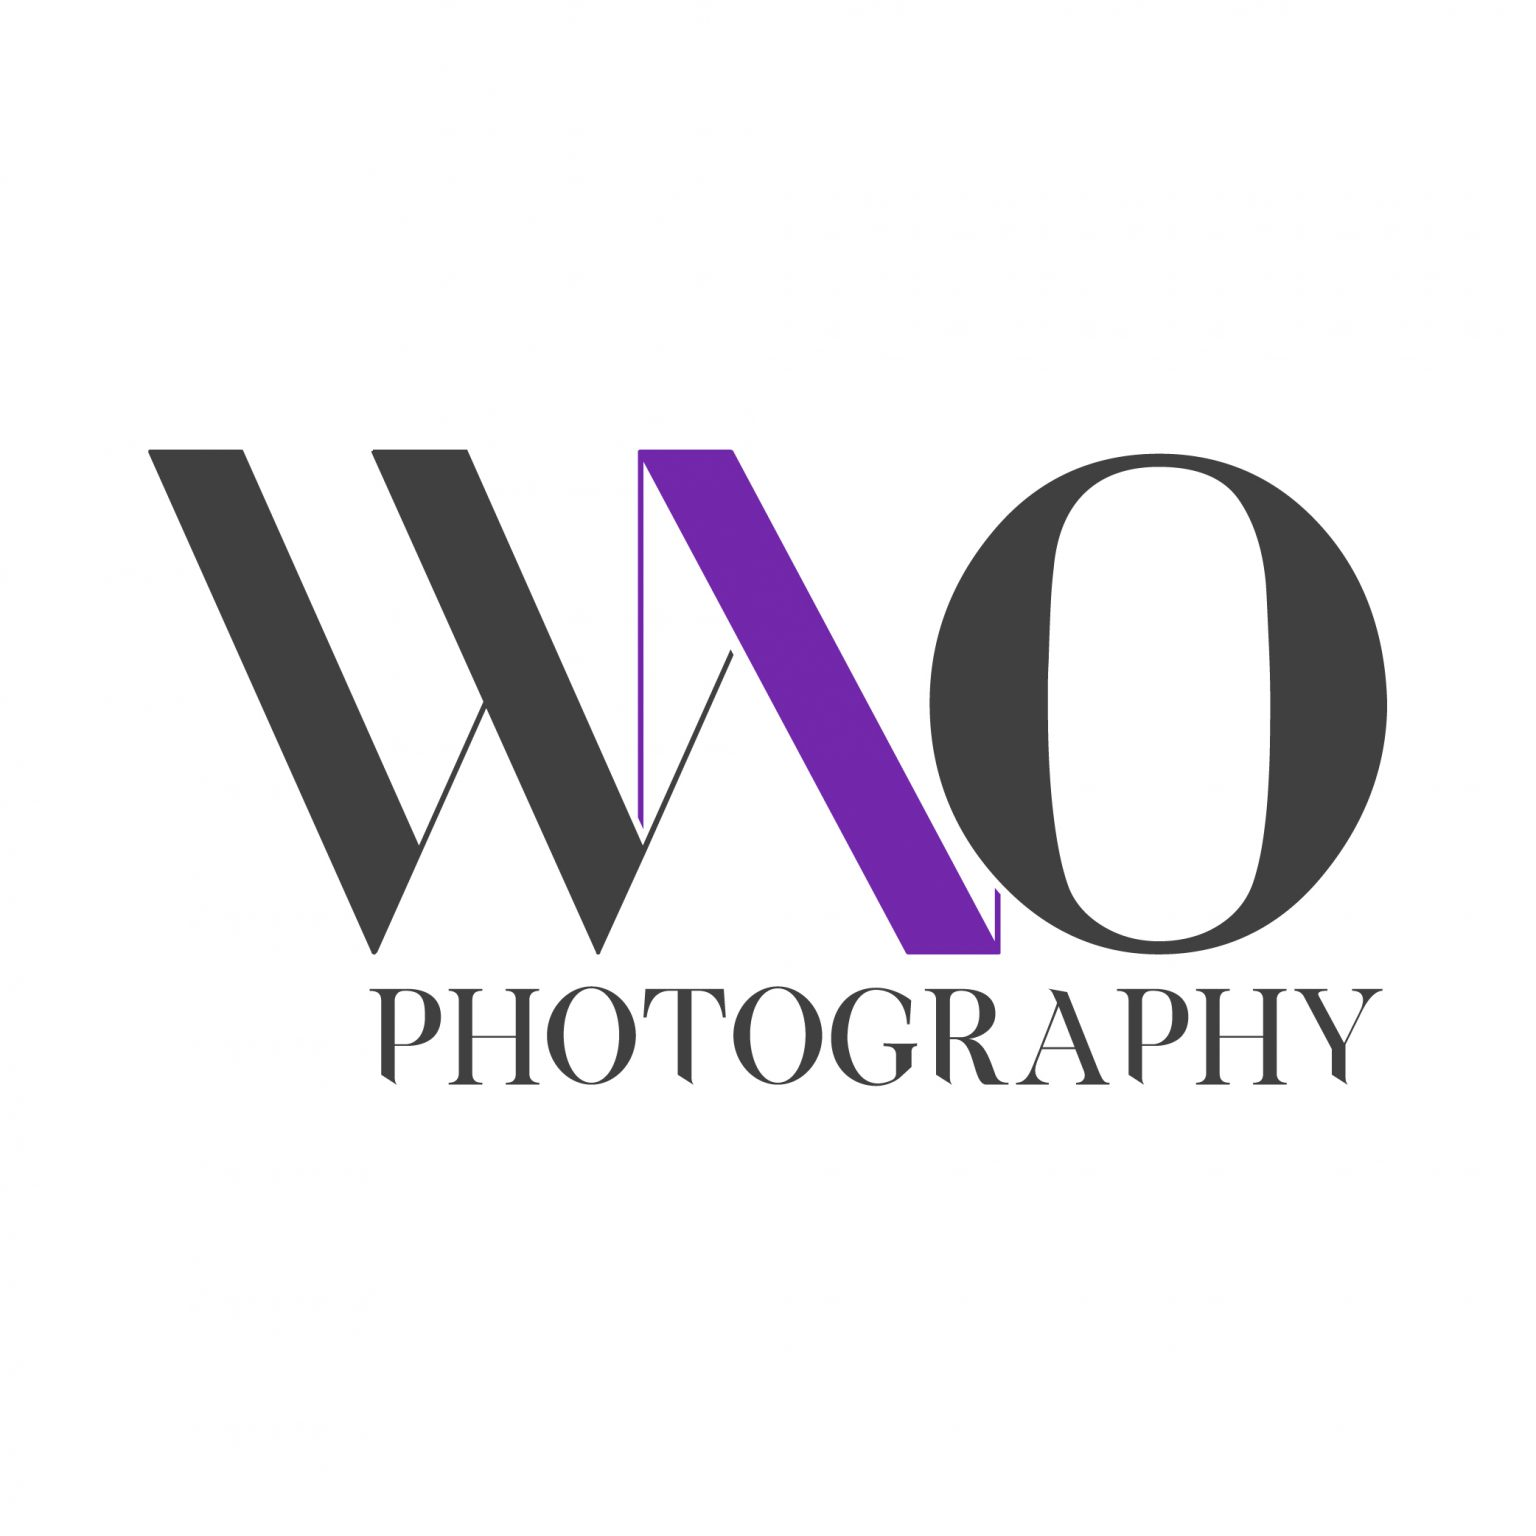 Beauty and fashion Photographer Will Overby